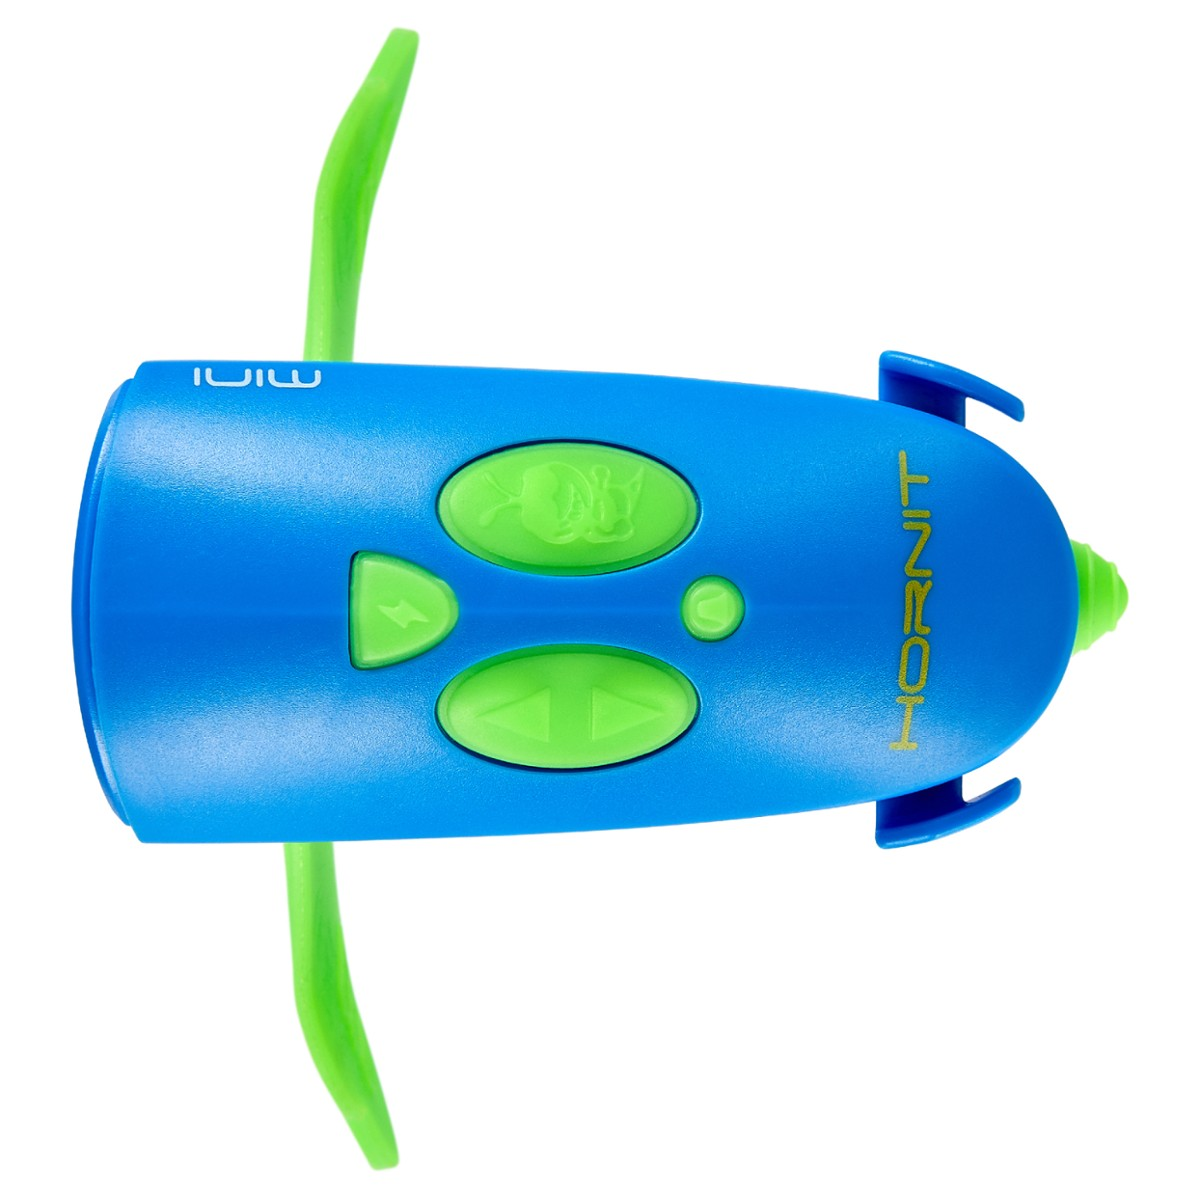 Mini HORNIT lampka klakson GREEN - BLUE